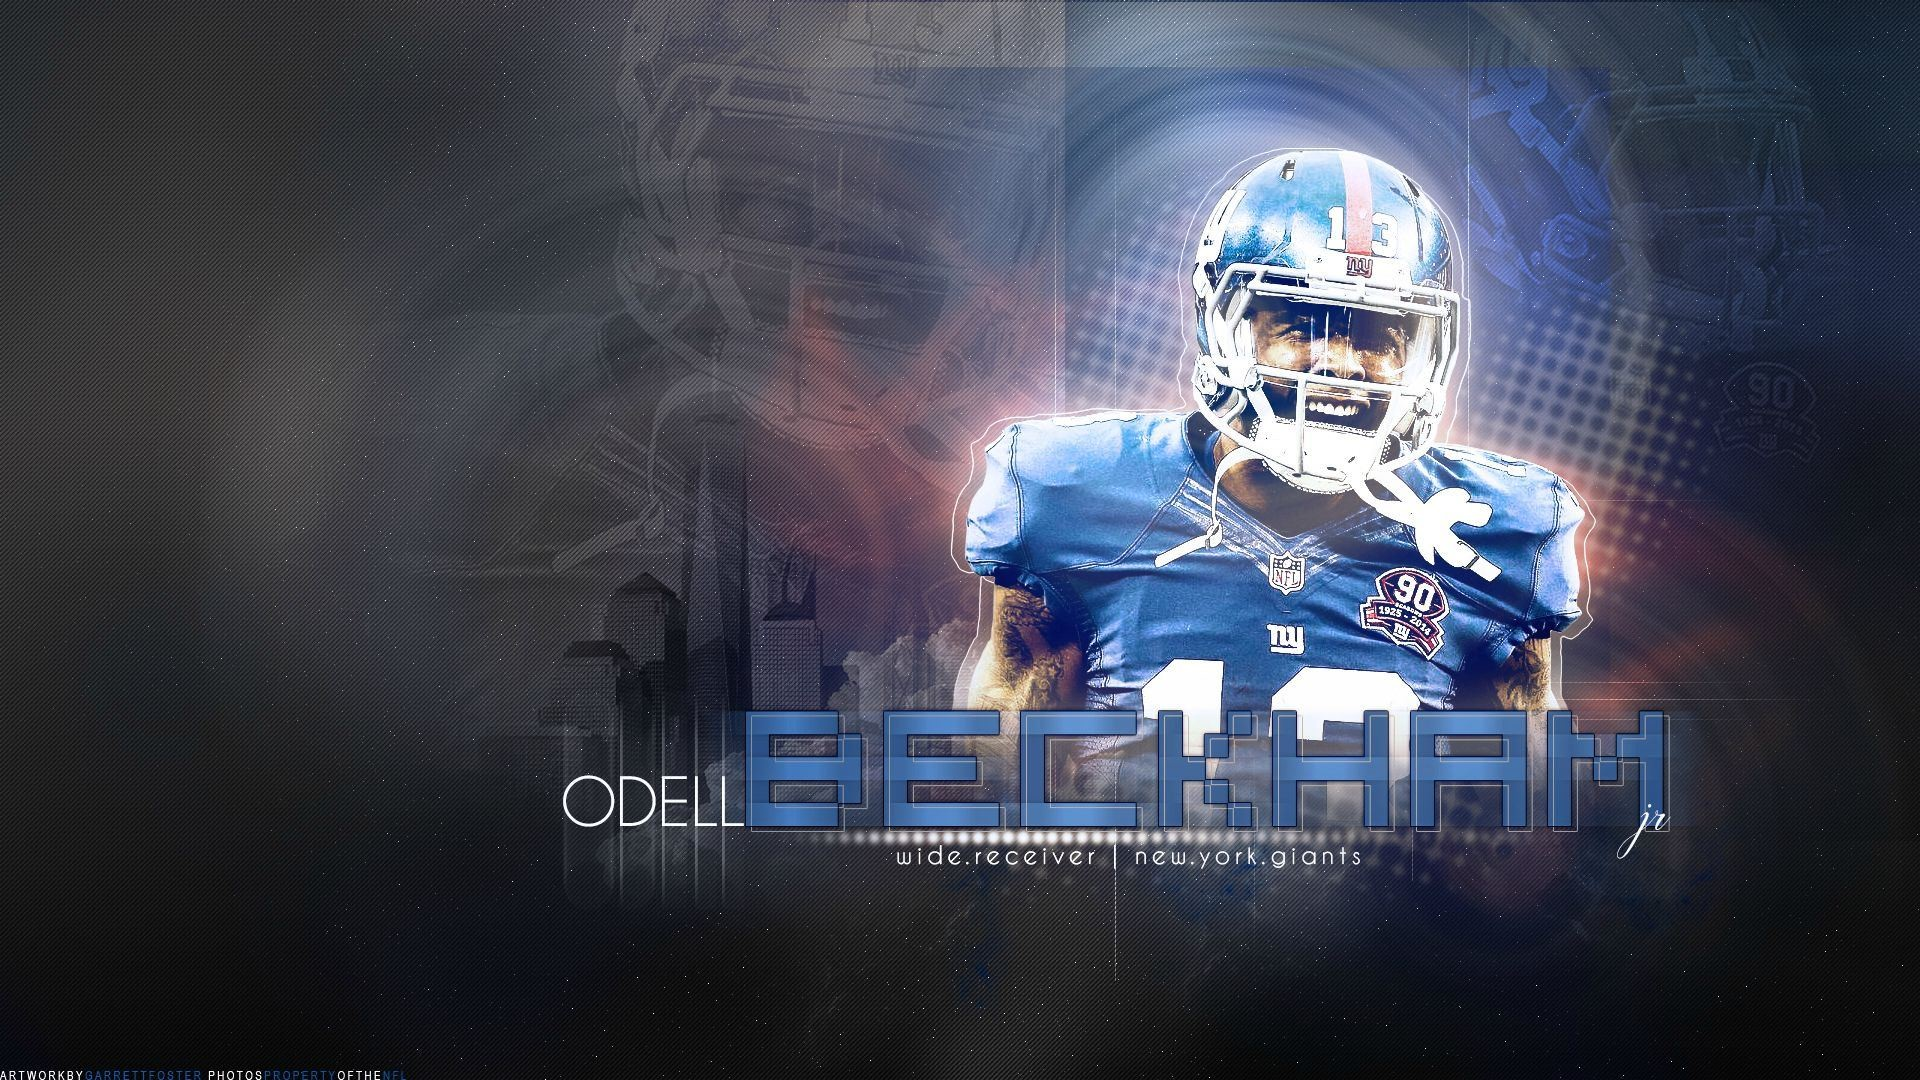 1920x1080 odell-beckham-jr-wide-receiver